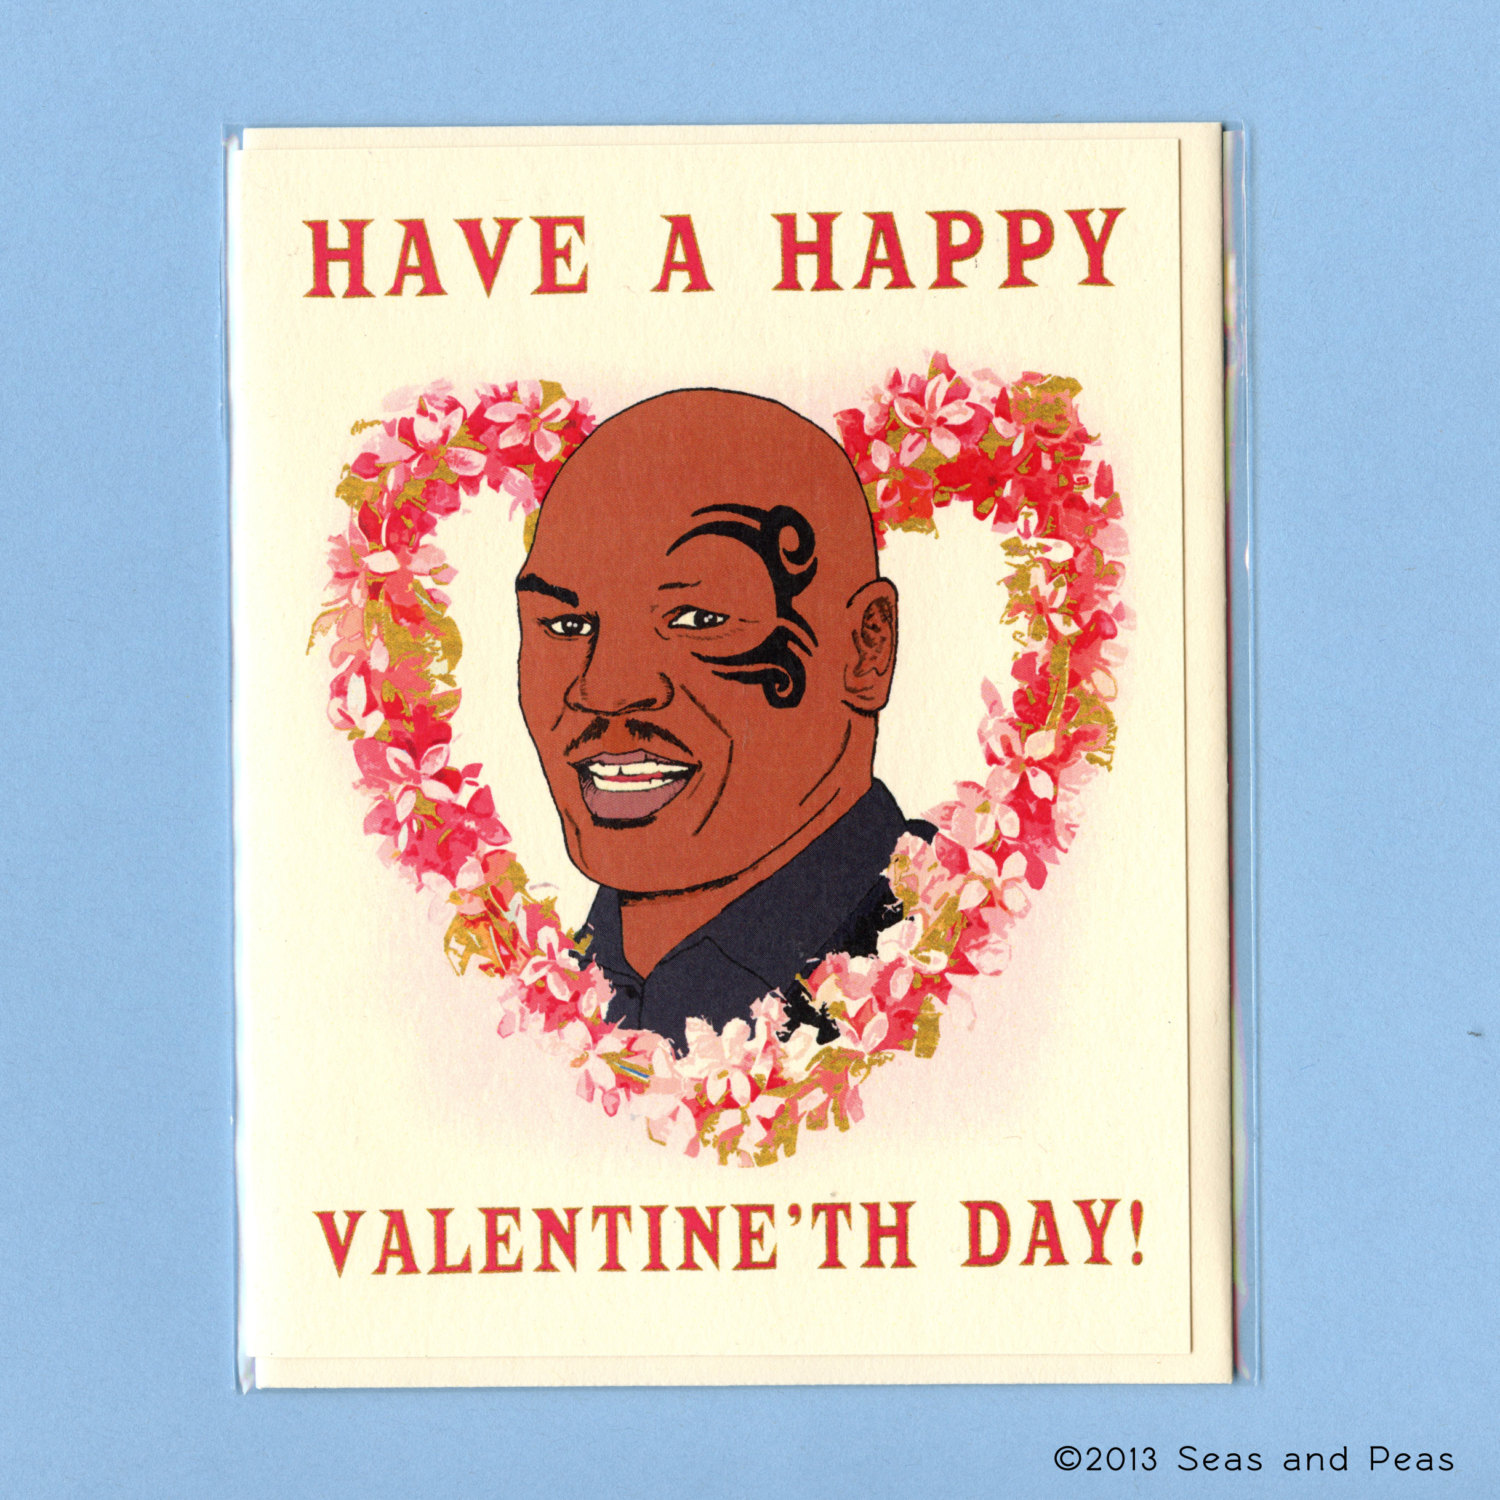 Happy Valentine In Advance Quotes: Mike Tyson Lisp Funny Quotes. QuotesGram